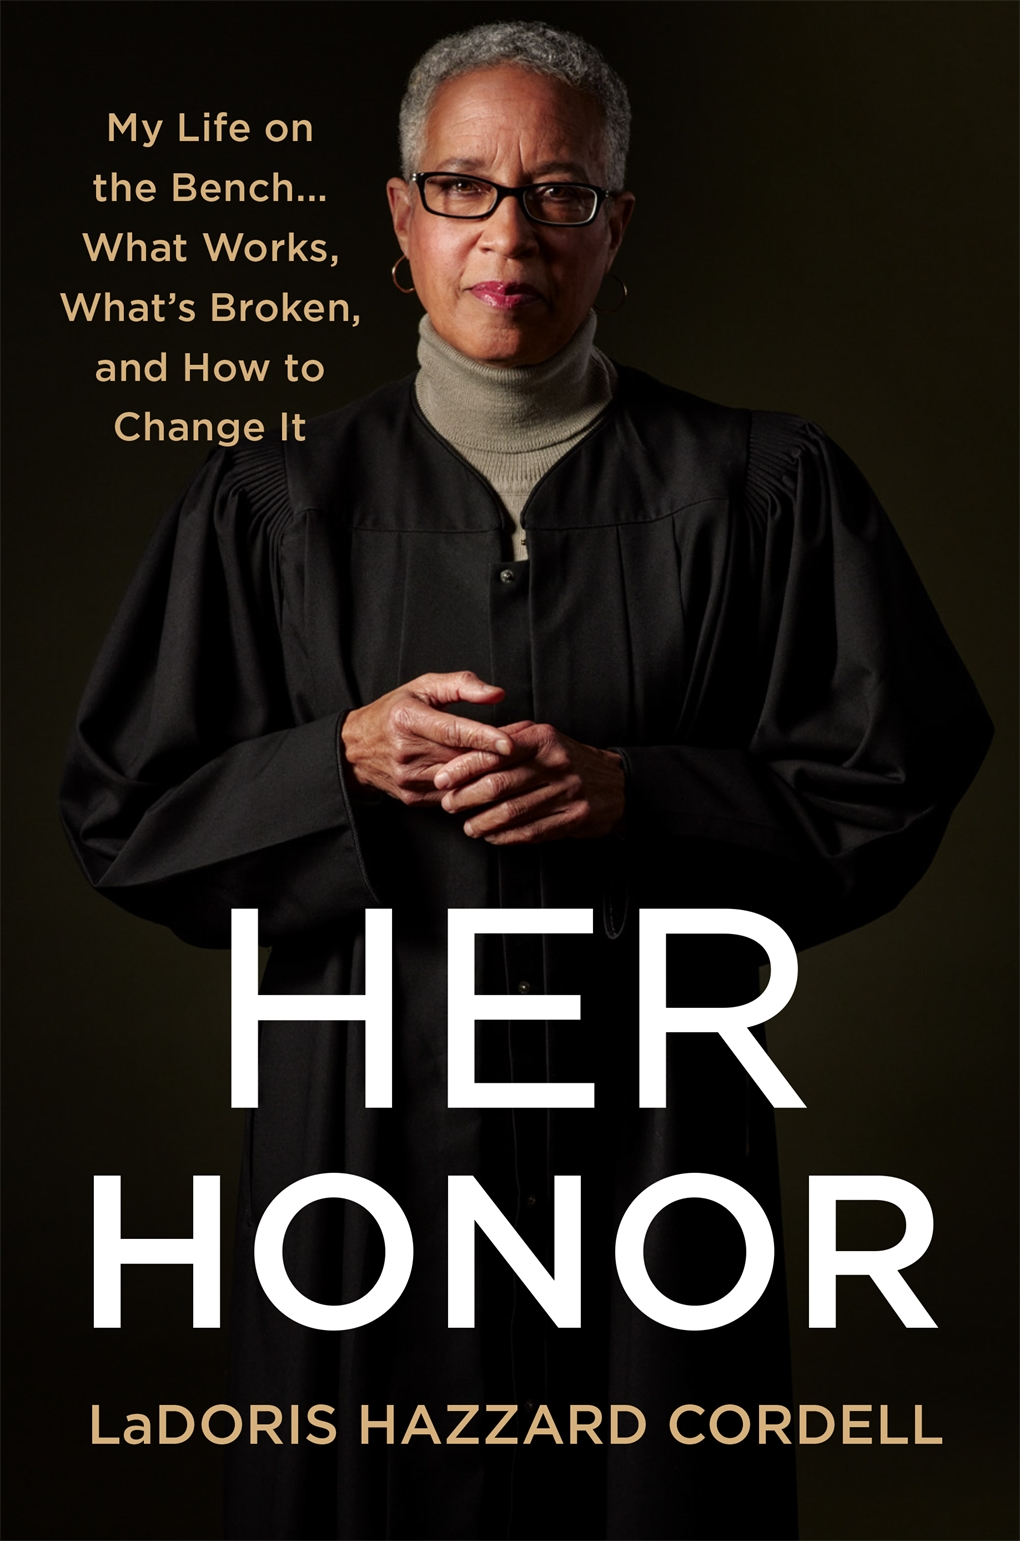 Interior book image for Her Honor